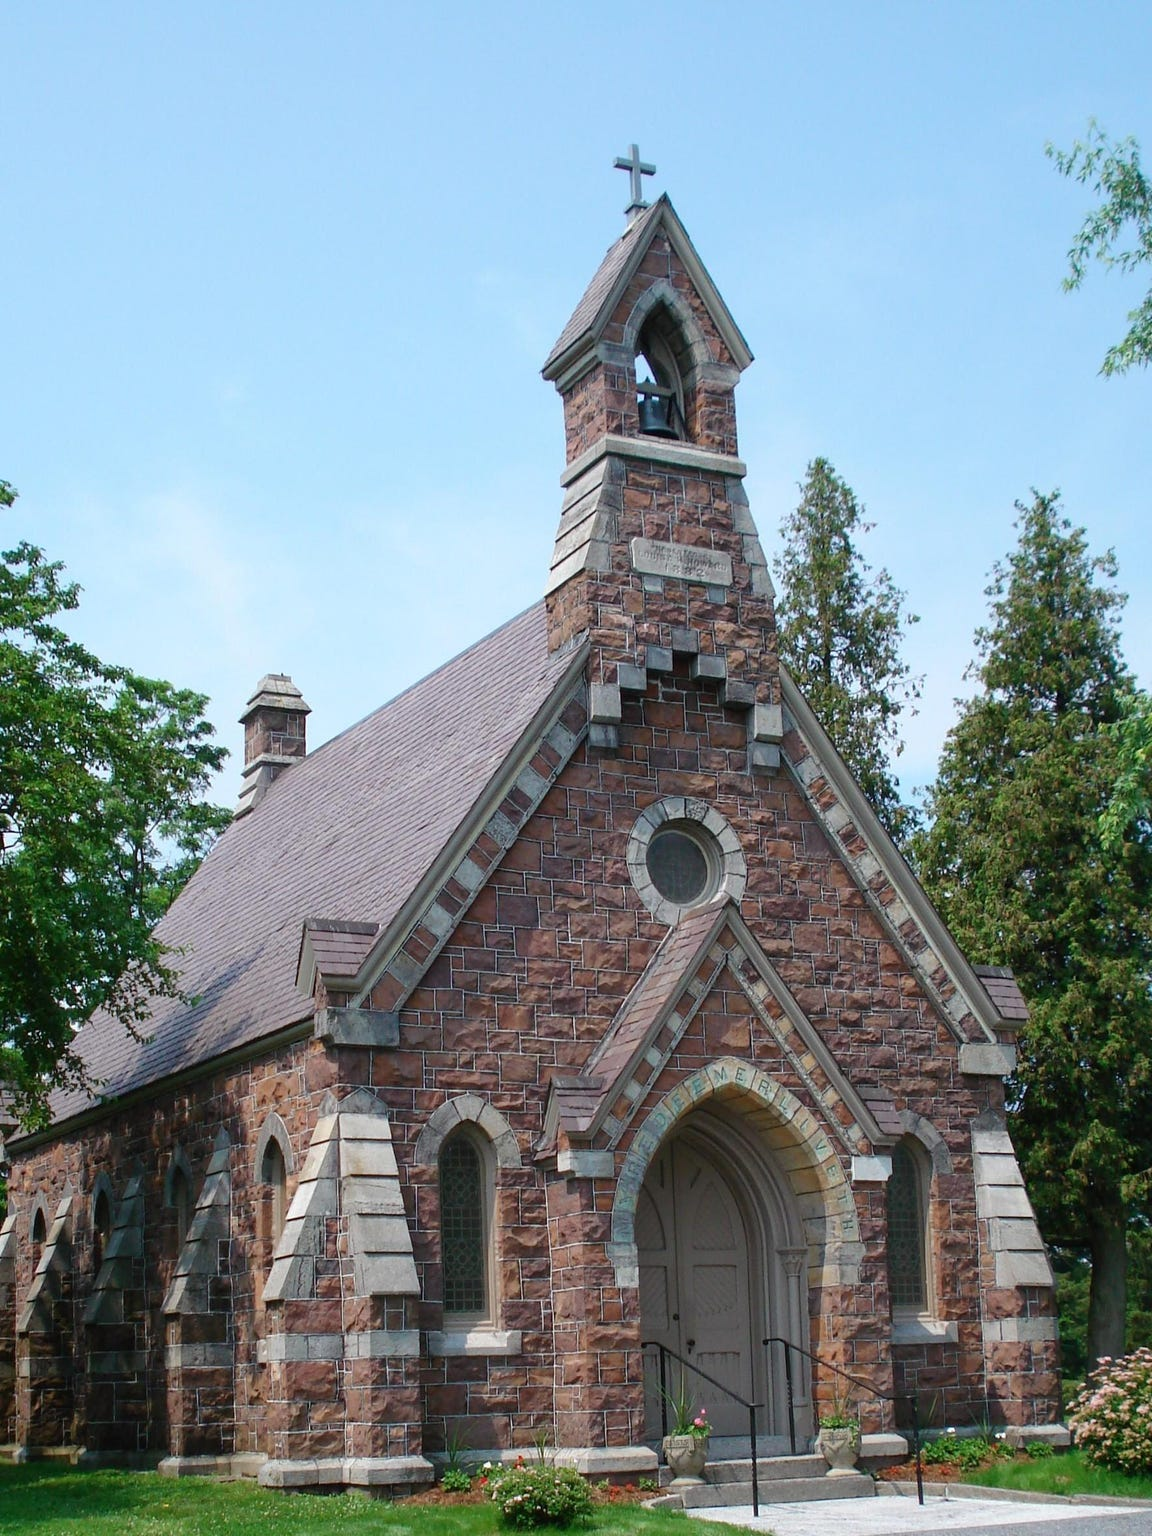 The Louisa Howard Chapel dates back to 1882. The restoration